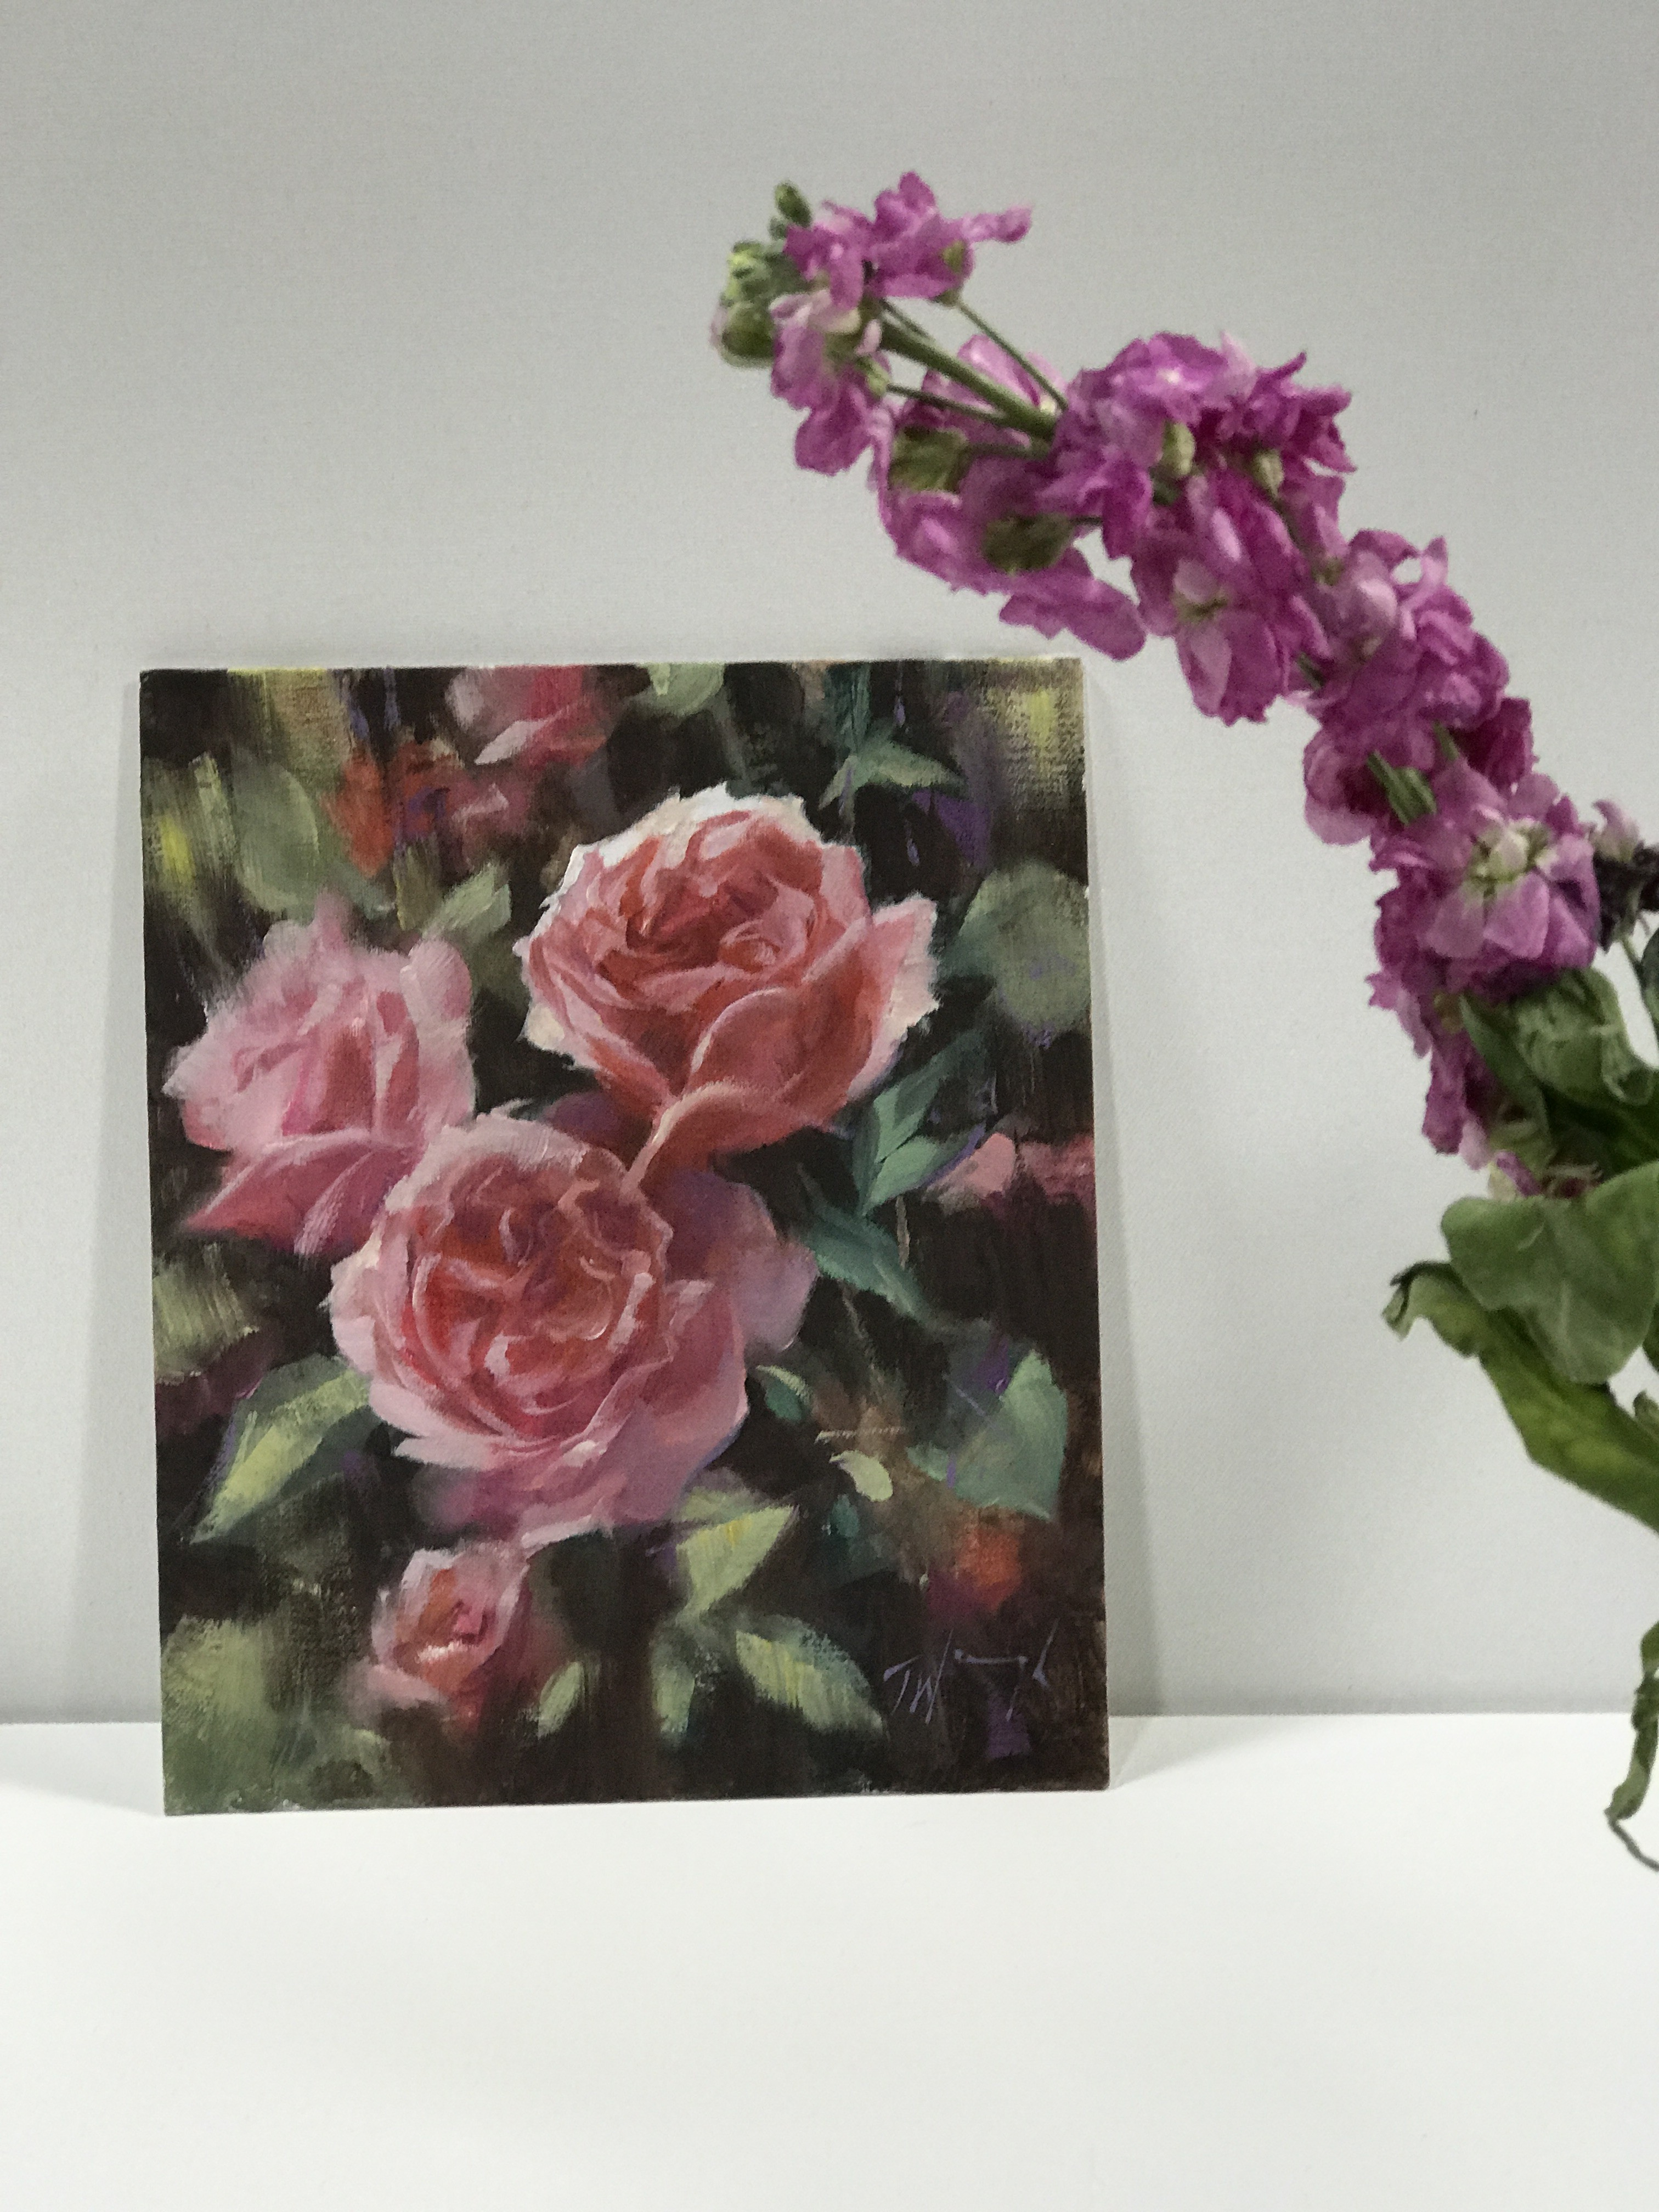 Deep Pink is an original oil painting by Trevor Waugh. The rich pink tones contrasted with the blurred green background allows focus to be purely on the flowers.